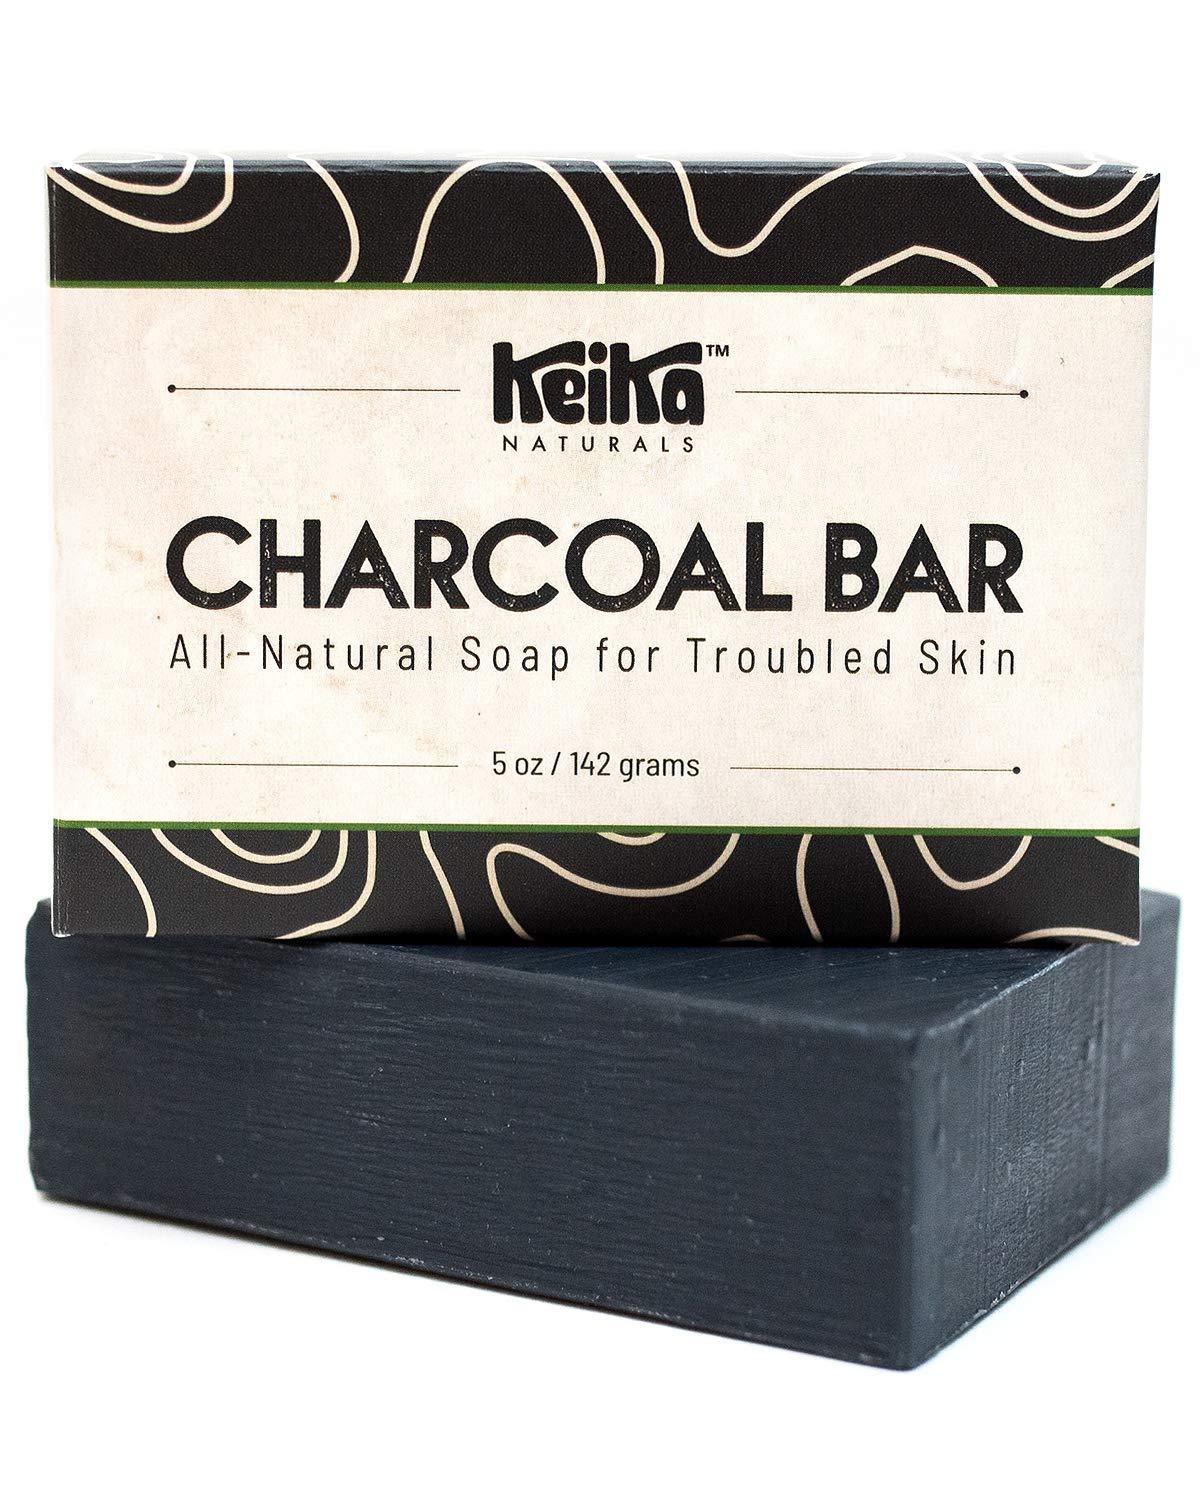 Keika Naturals Charcoal Black Soap Bar for Acne, Eczema, Psoriasis, Face, Body, Men Women Teens with Oily Skin, 5 oz. (Charcoal, 1-Pack)